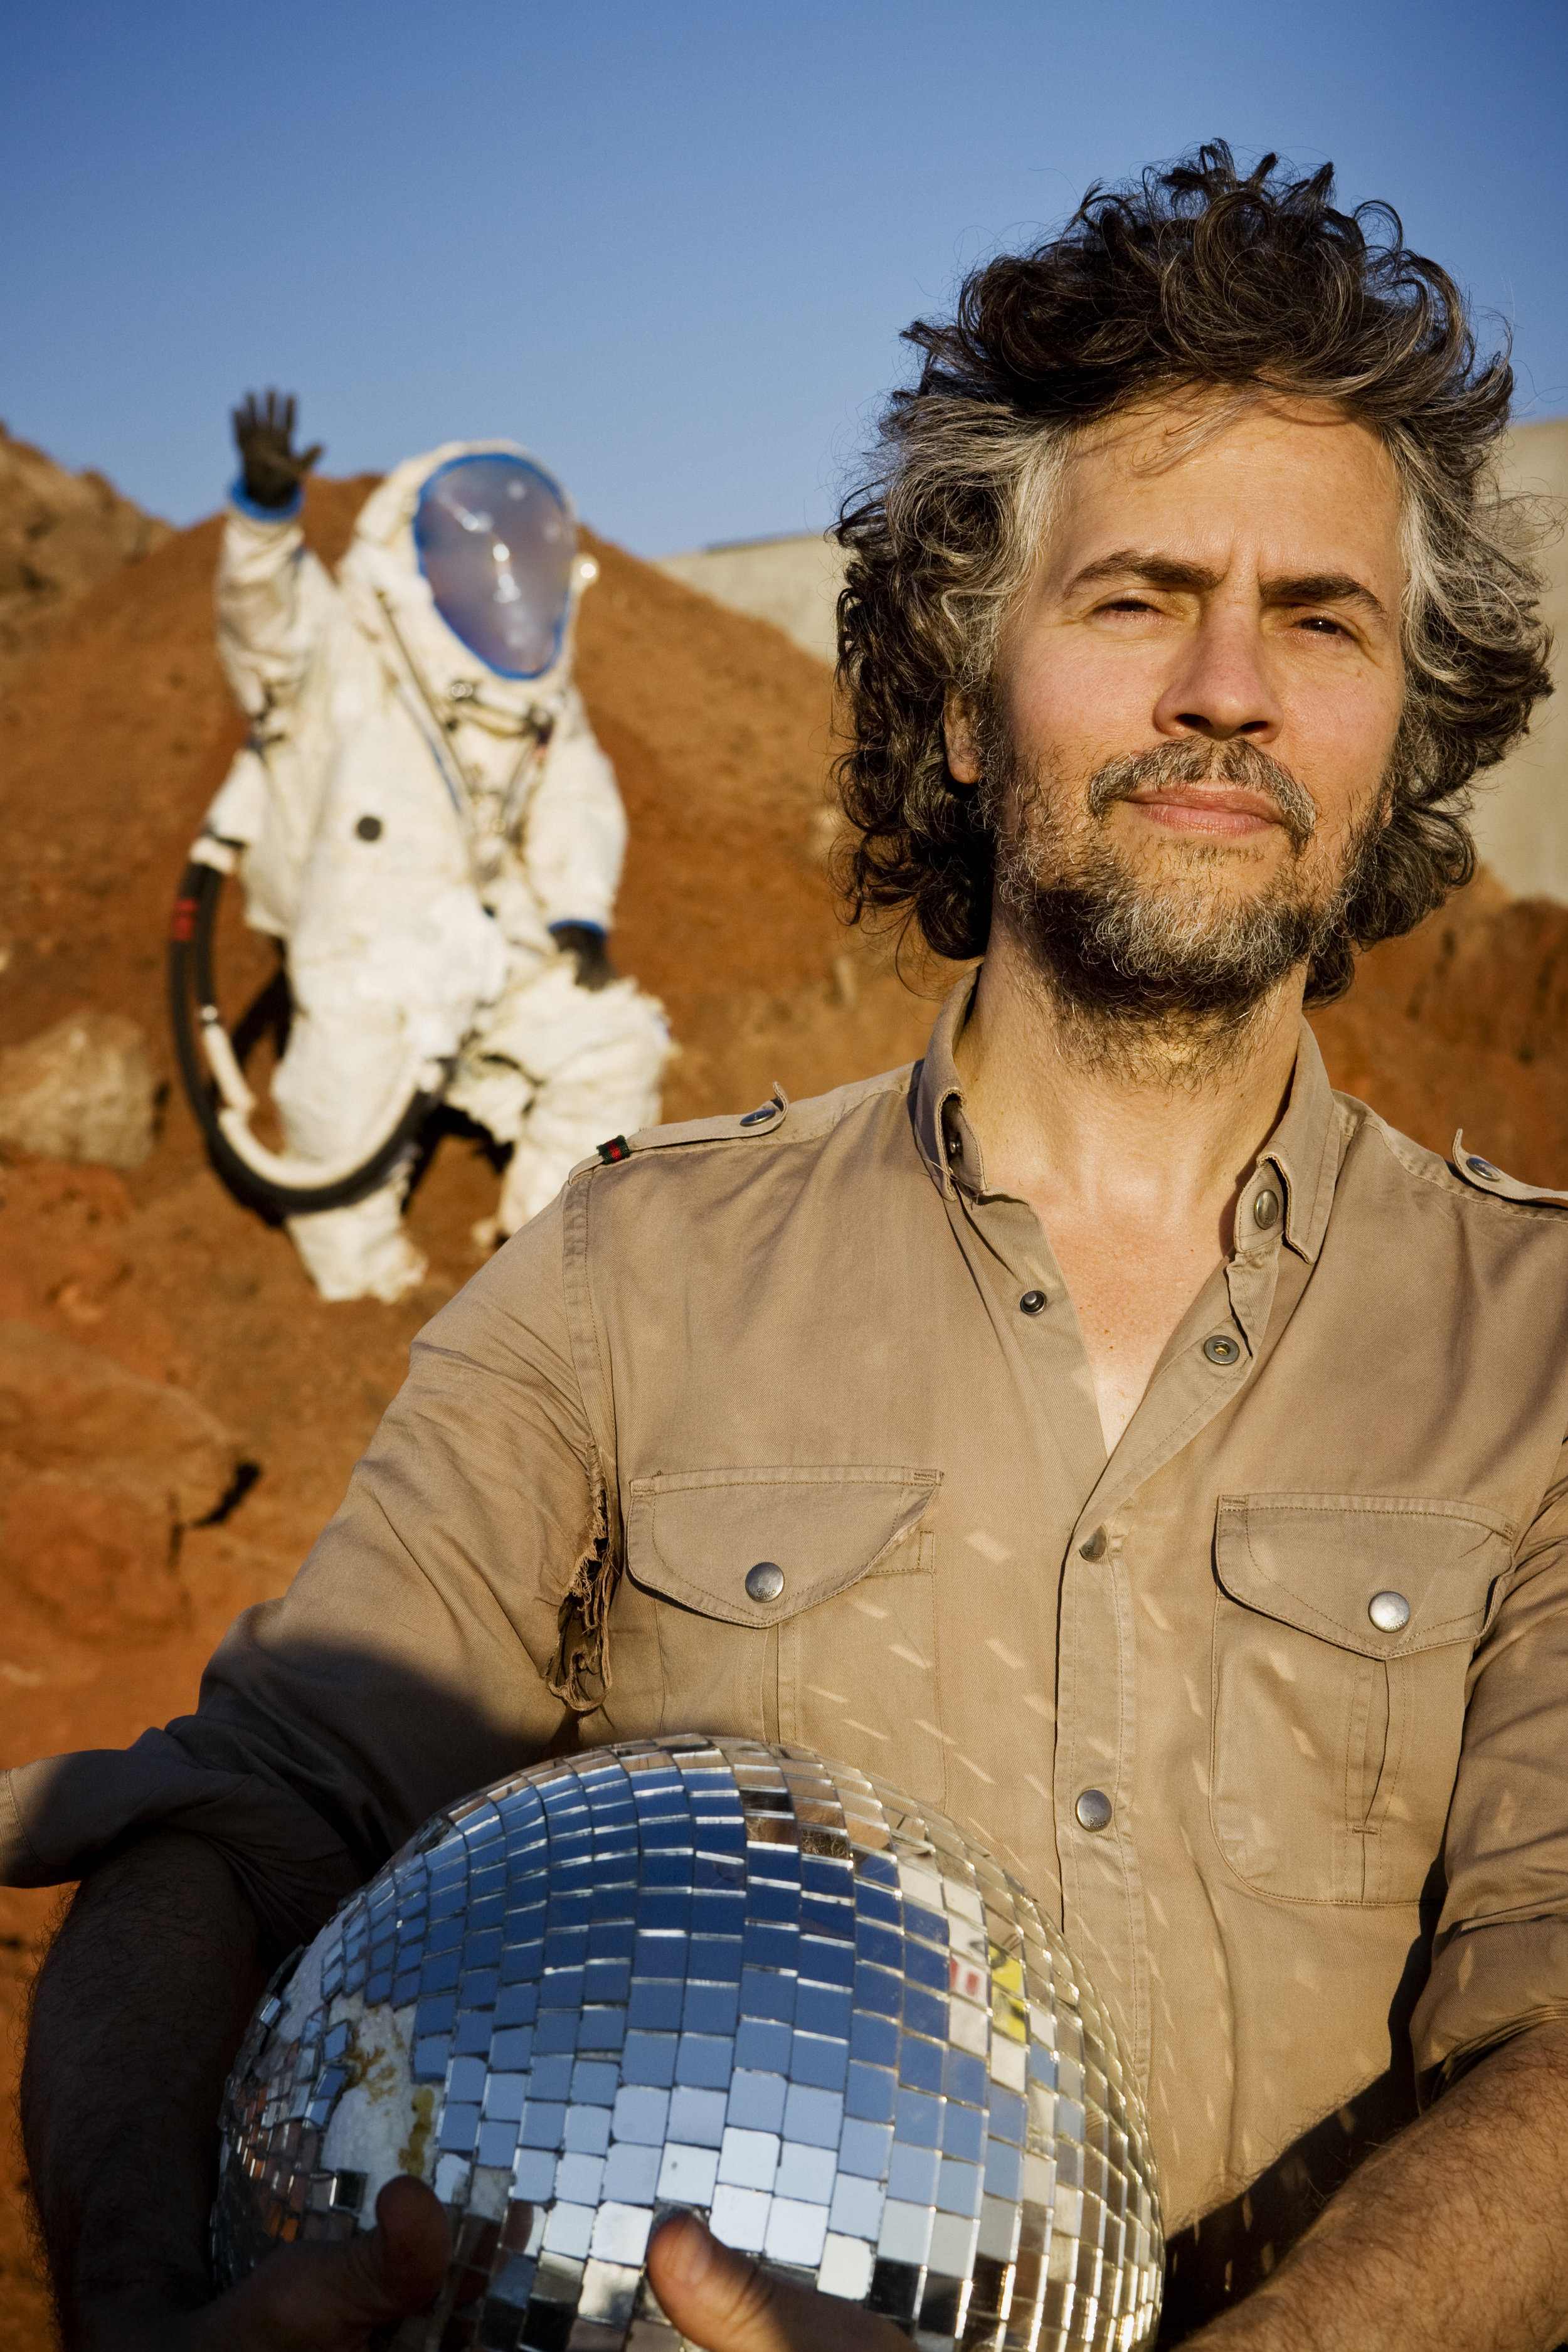 Wayne Coyne (The Flaming Lips), Oklahoma City, 2008